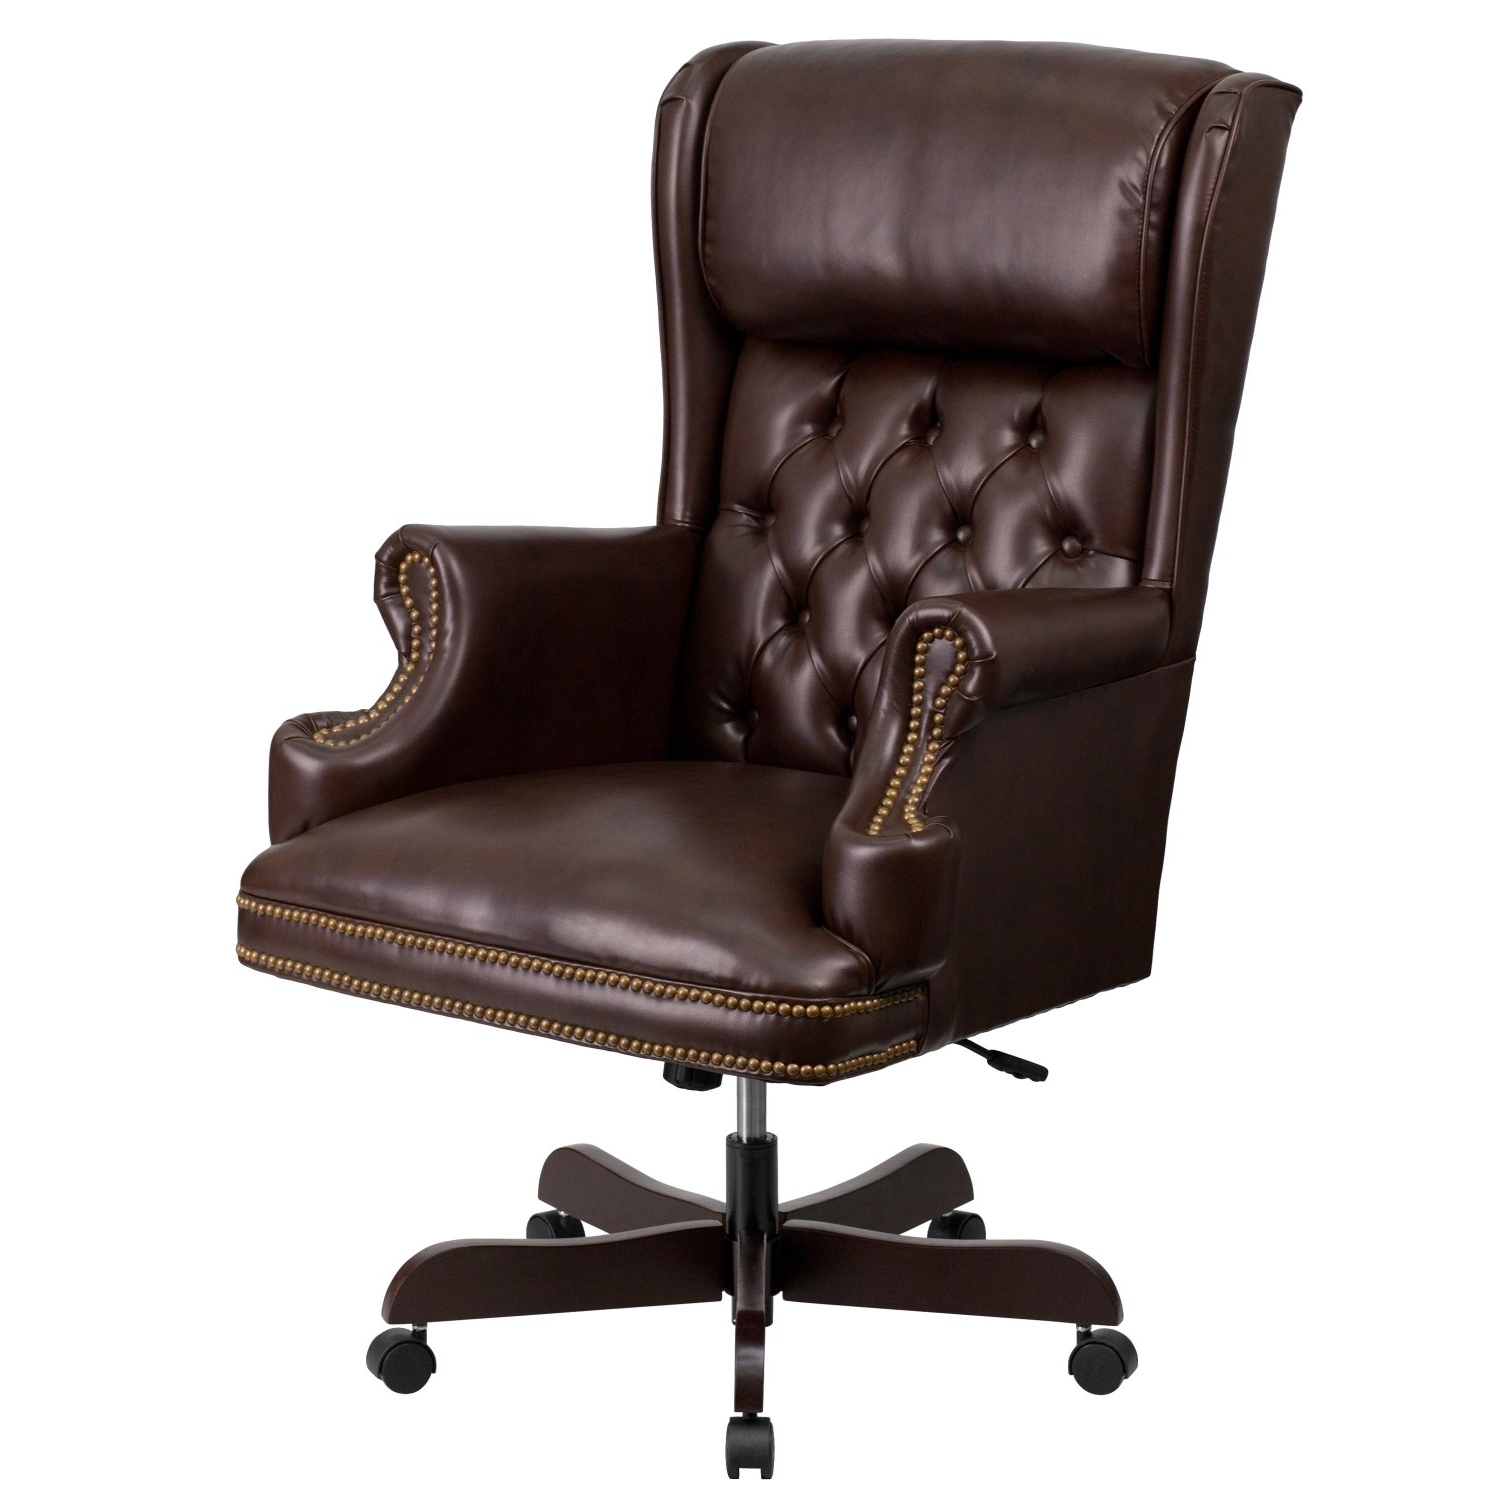 Furniture Ci J600 Brn Gg High Back Traditional Tufted Brown With Regard To Fashionable Oversized Executive Office Chairs (View 5 of 20)